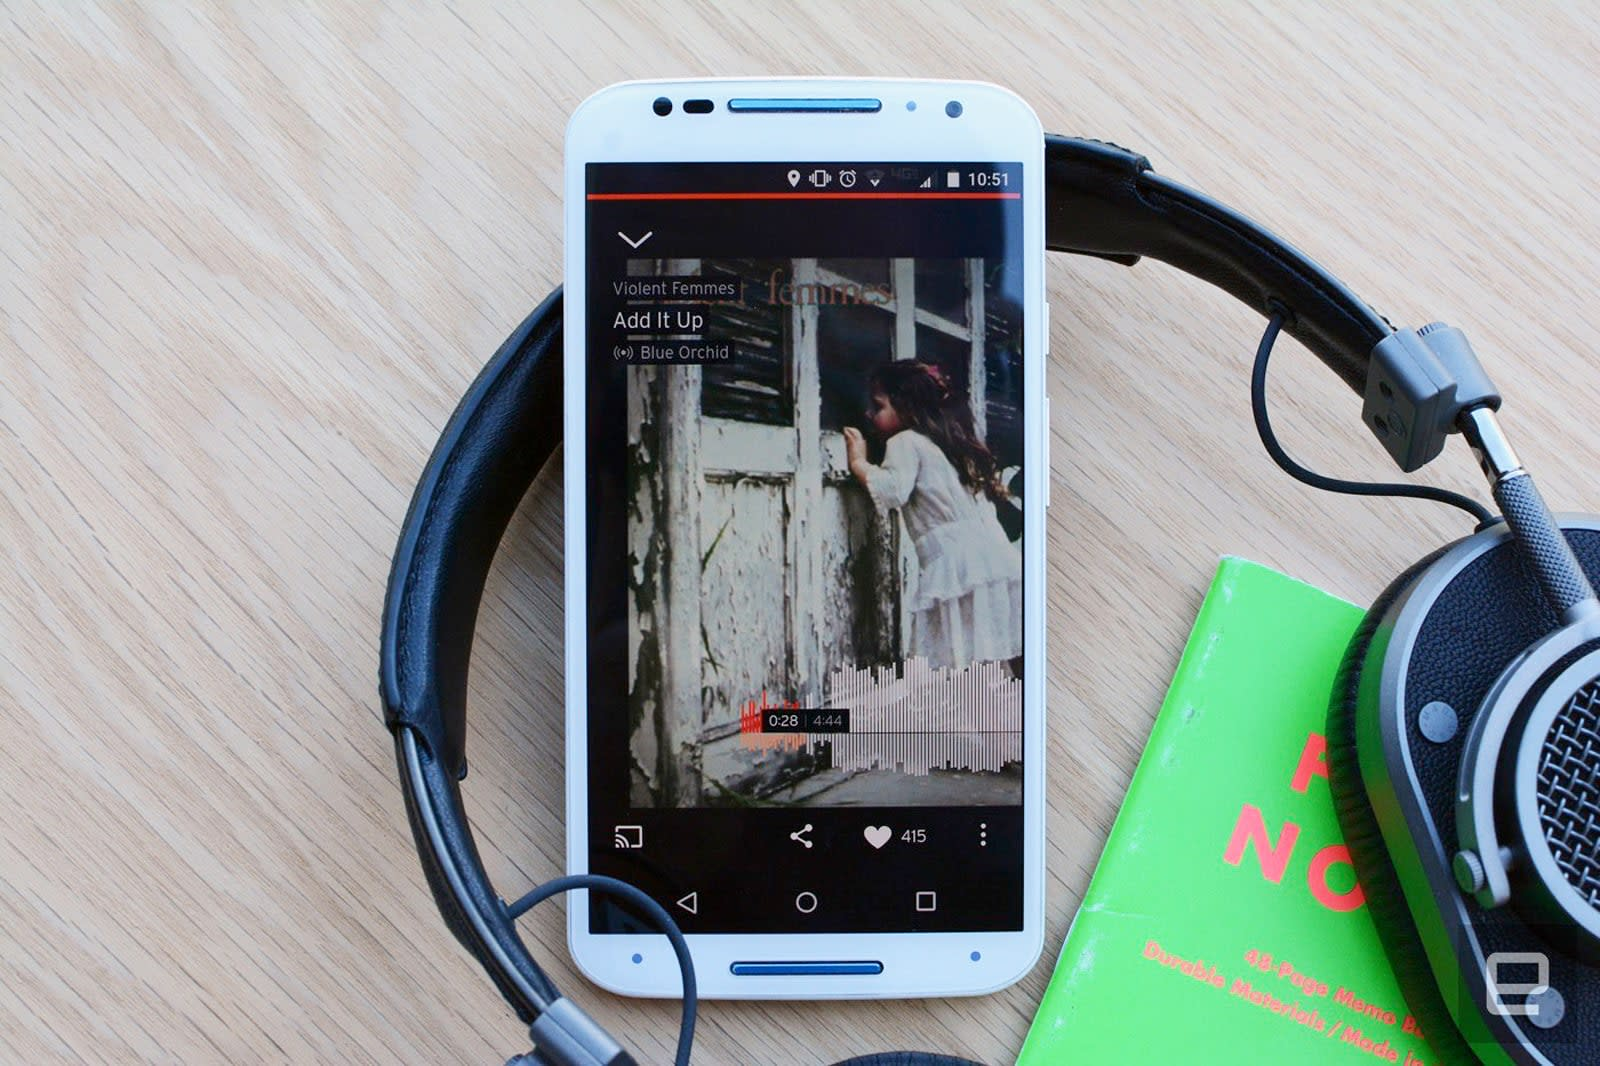 SoundCloud Go promo gives you 3 months of music for 99 cents